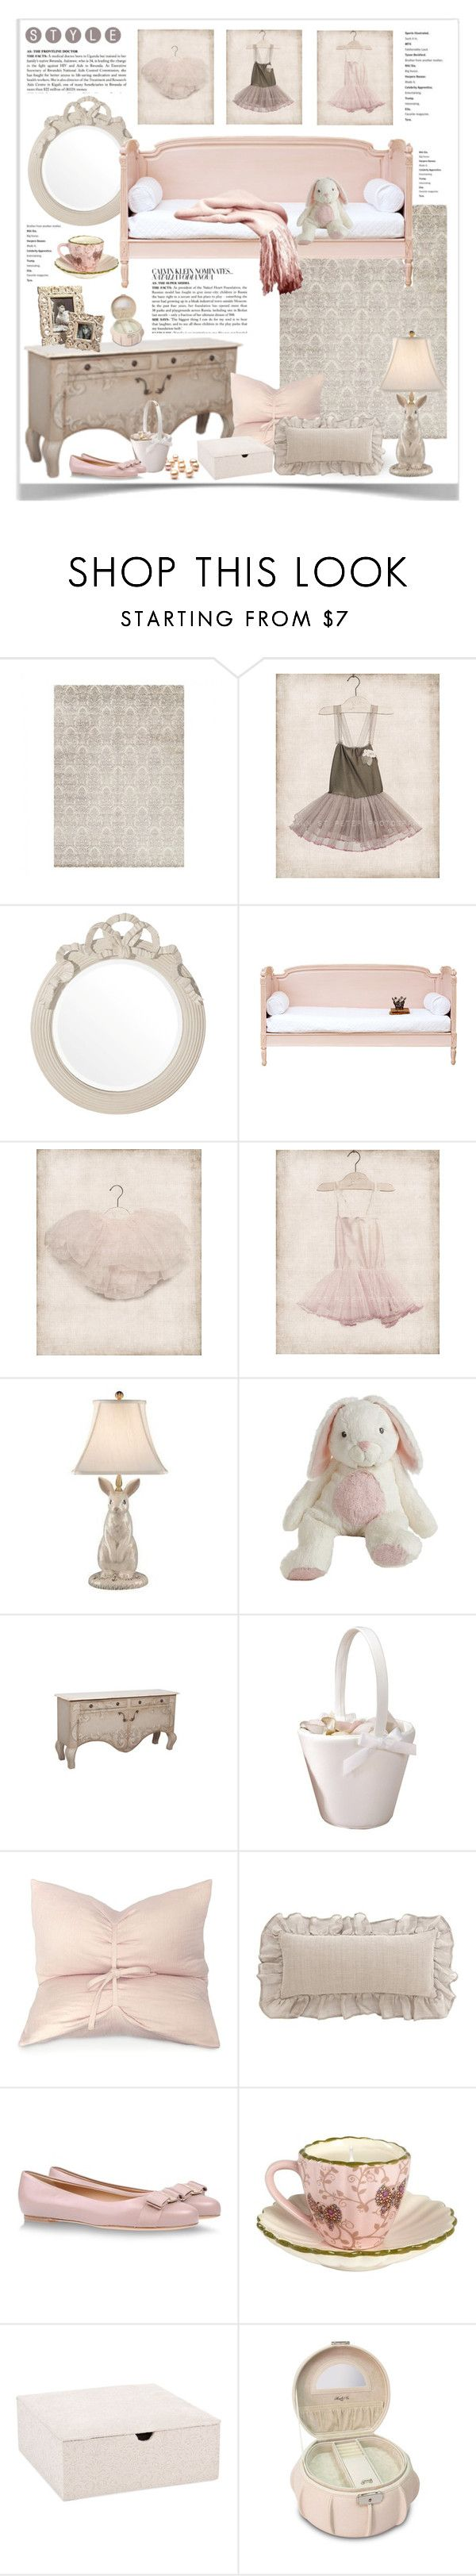 46 best savio firmino images on Pinterest | Baby things, Black and ...